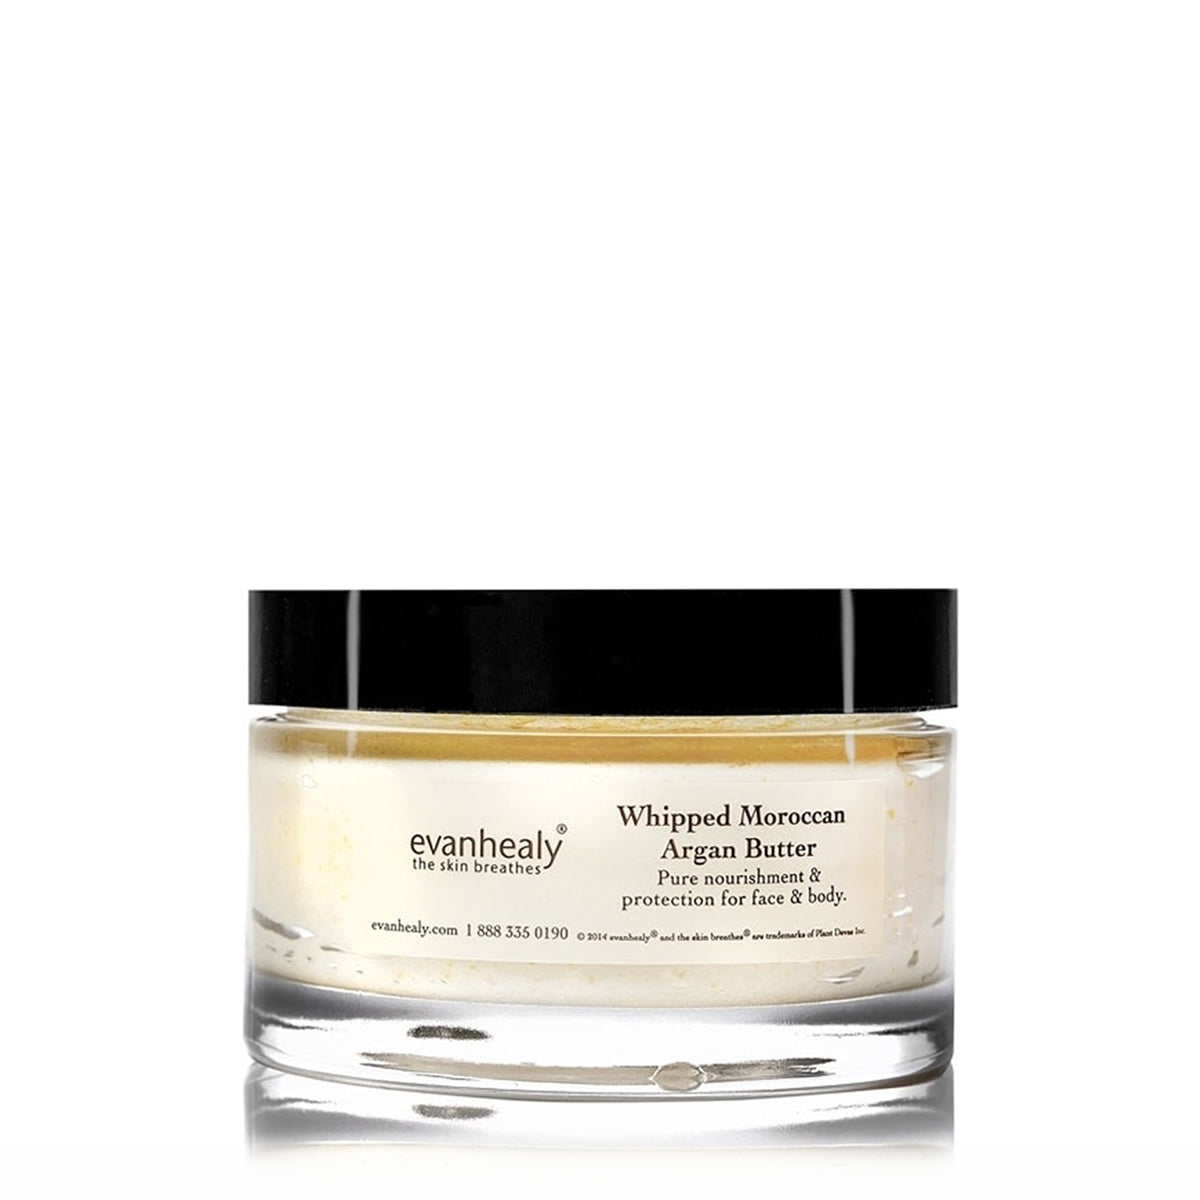 Whipped Moroccan Argan Butter